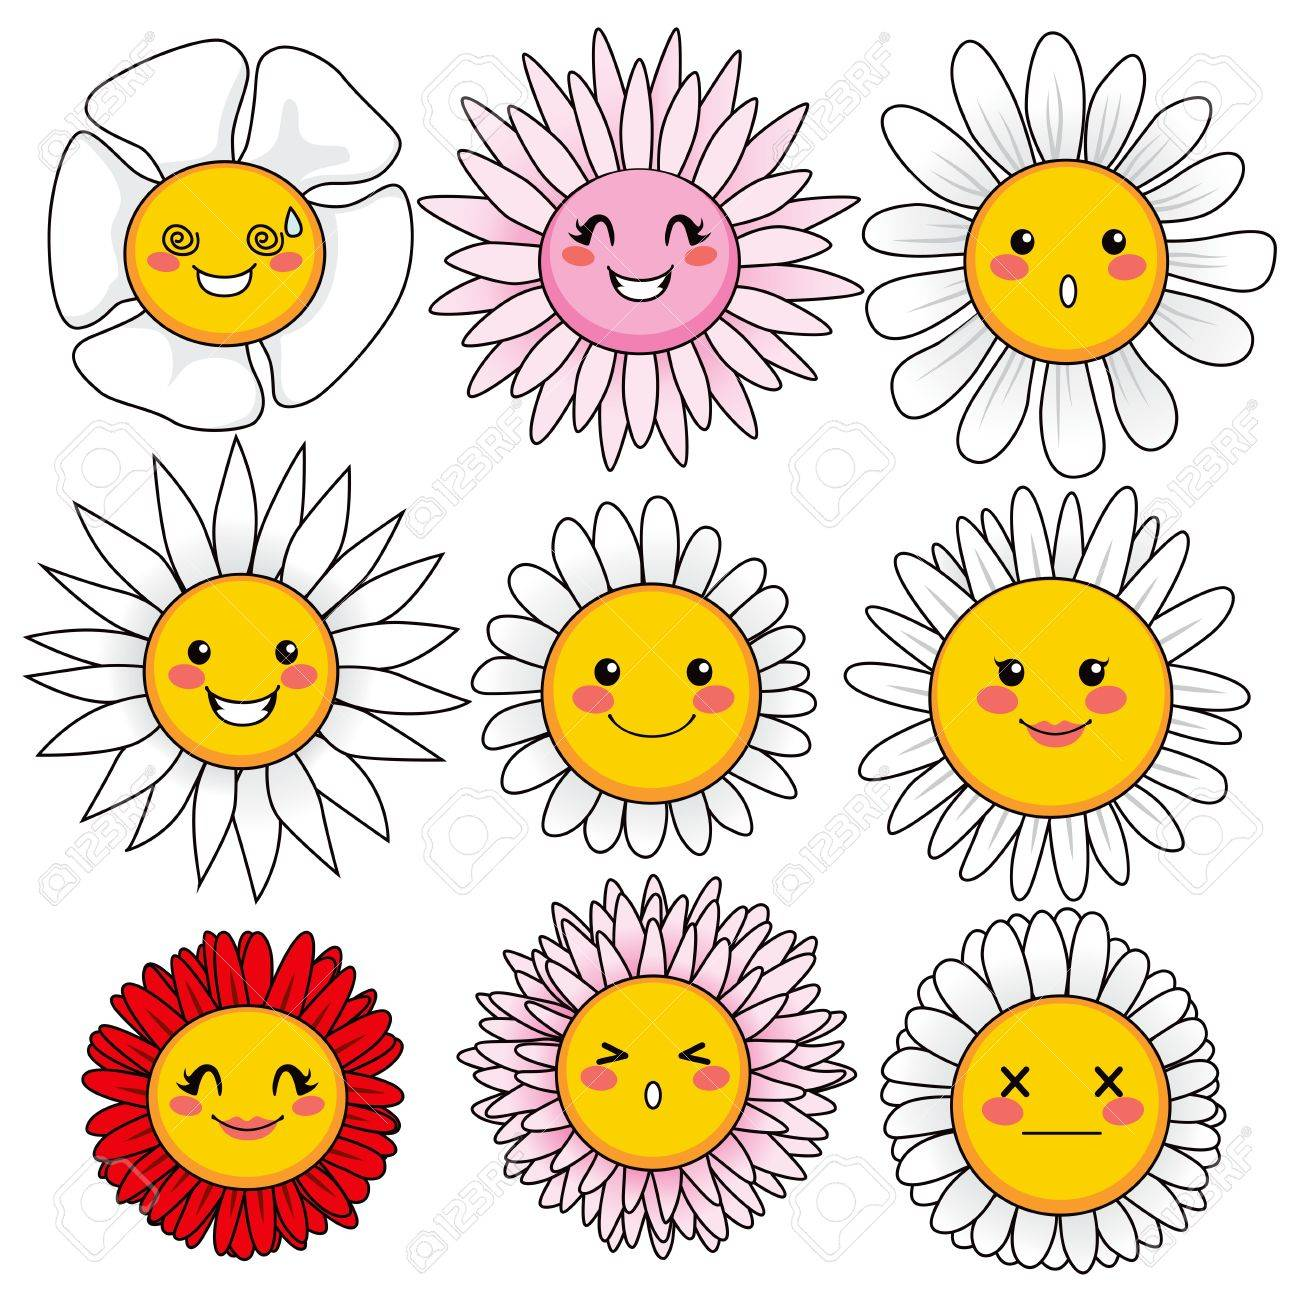 Collection Of Nine Cute And Funny Flower Faces With Different Facial Expressions Stock Vector